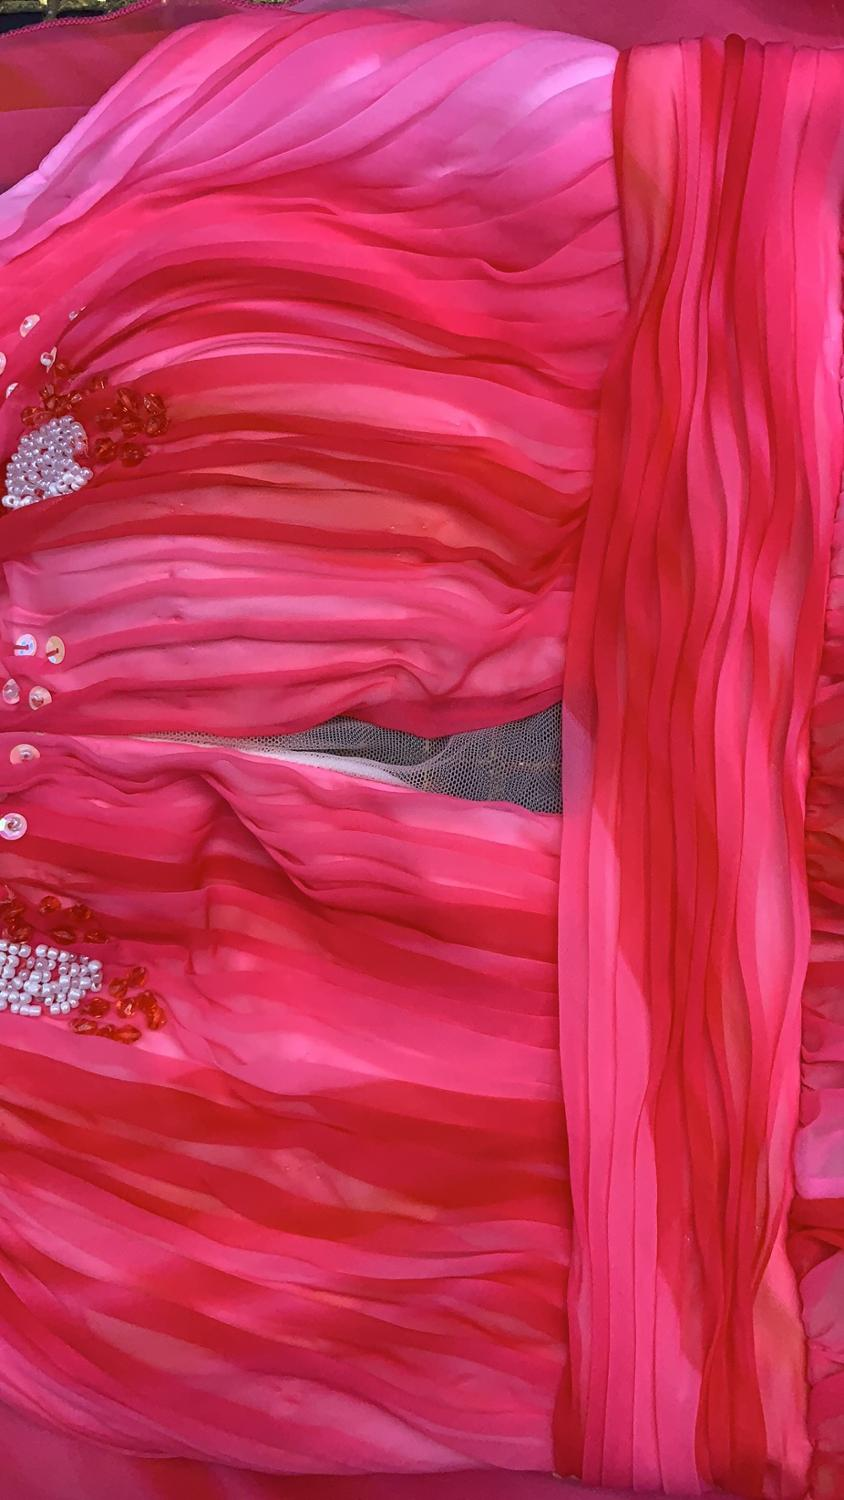 Fashion Show dress Party Diamonds Hollow Out Sequined Slit O neck Backless Sexy Women celebrity body con Long dresses wholesale in Dresses from Women 39 s Clothing